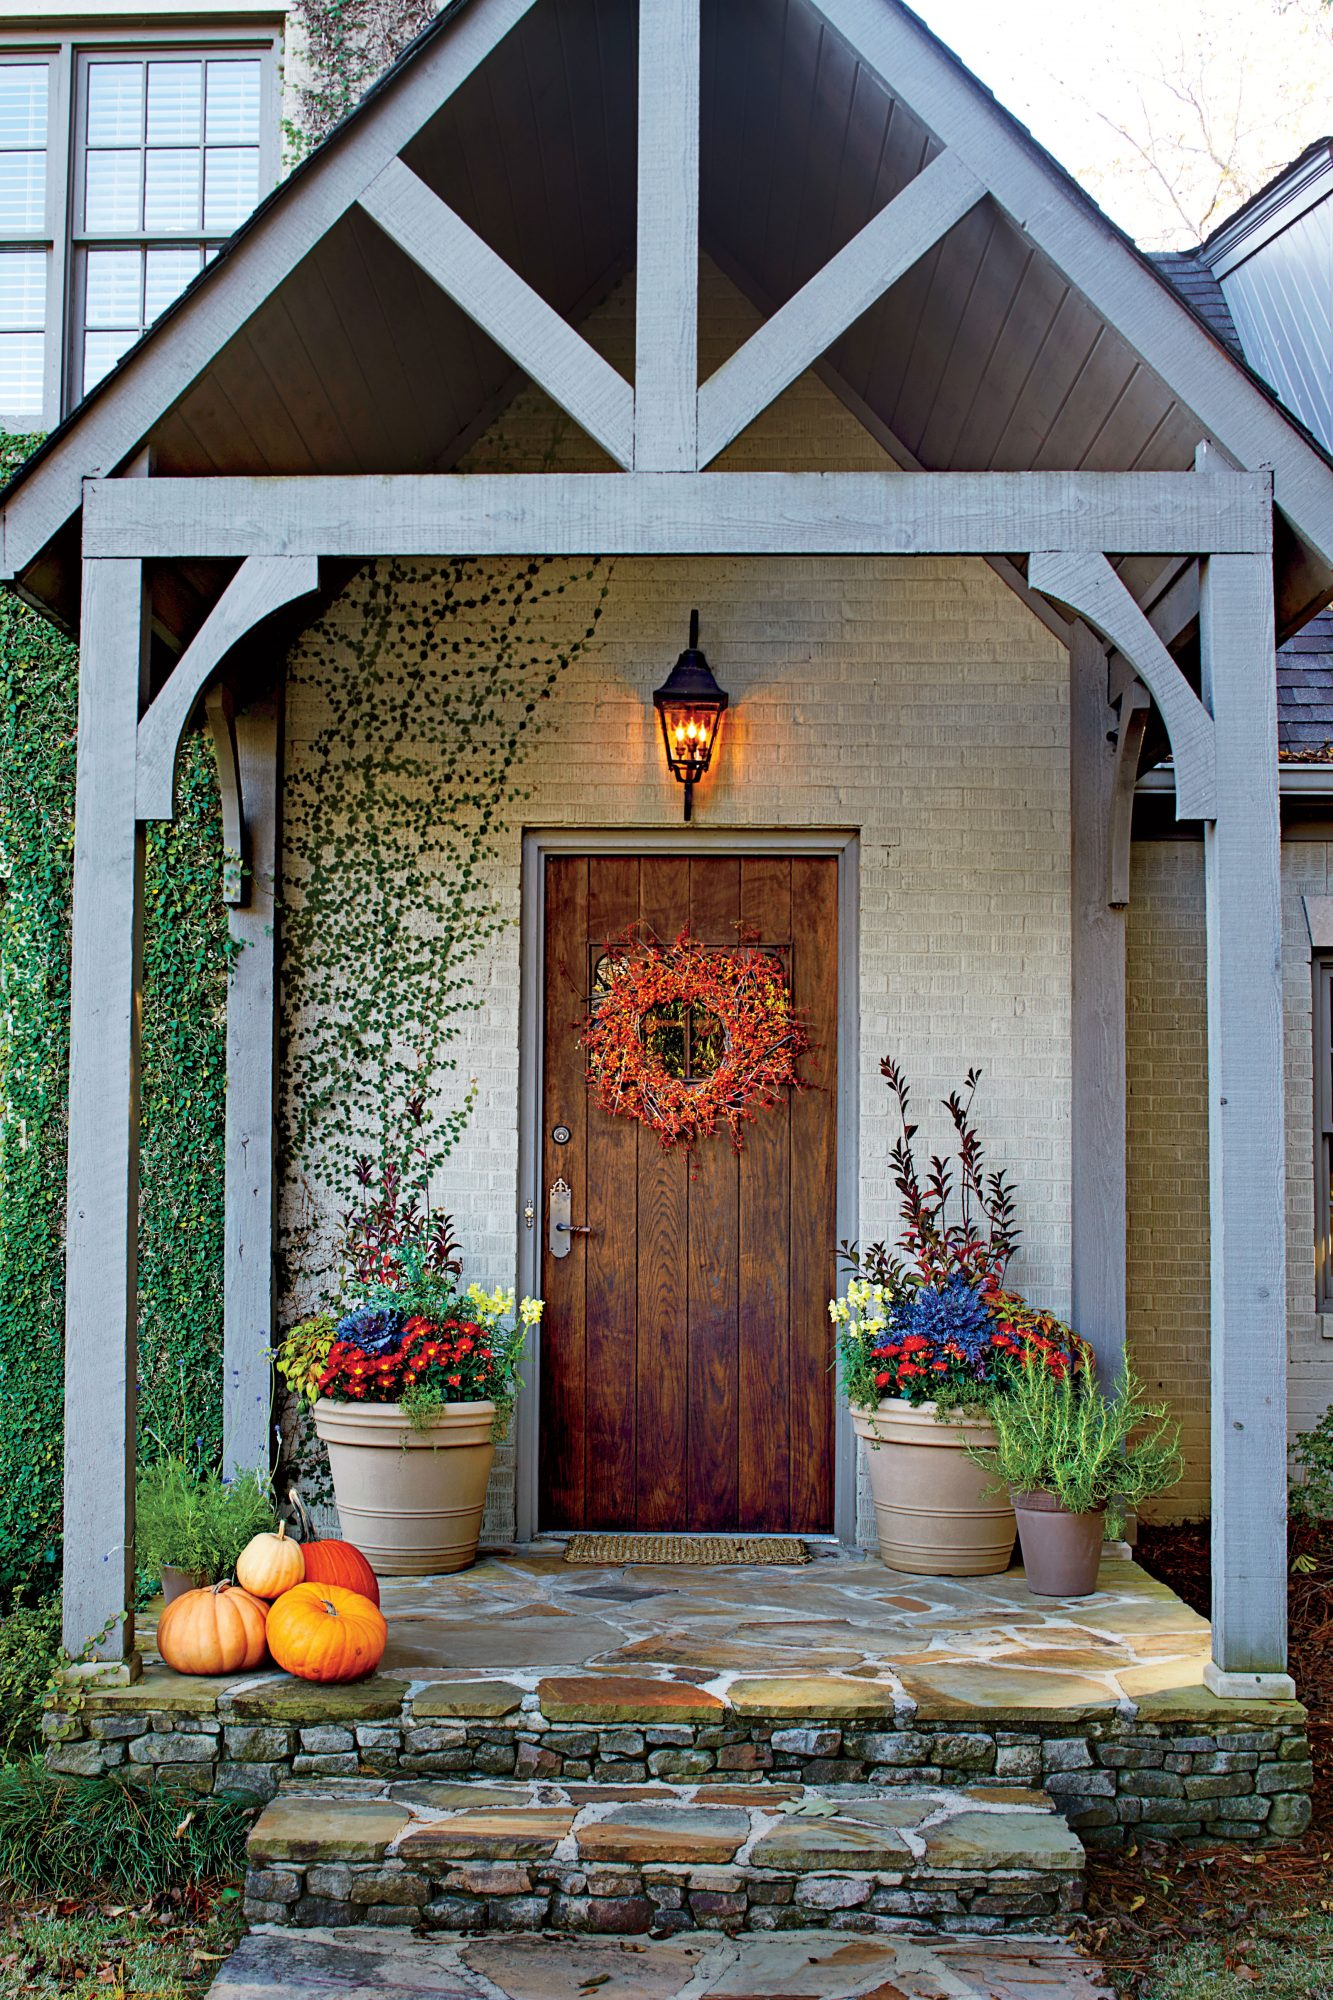 16 ways to spice up your porch d cor for fall southern Small front porch decorating ideas for fall